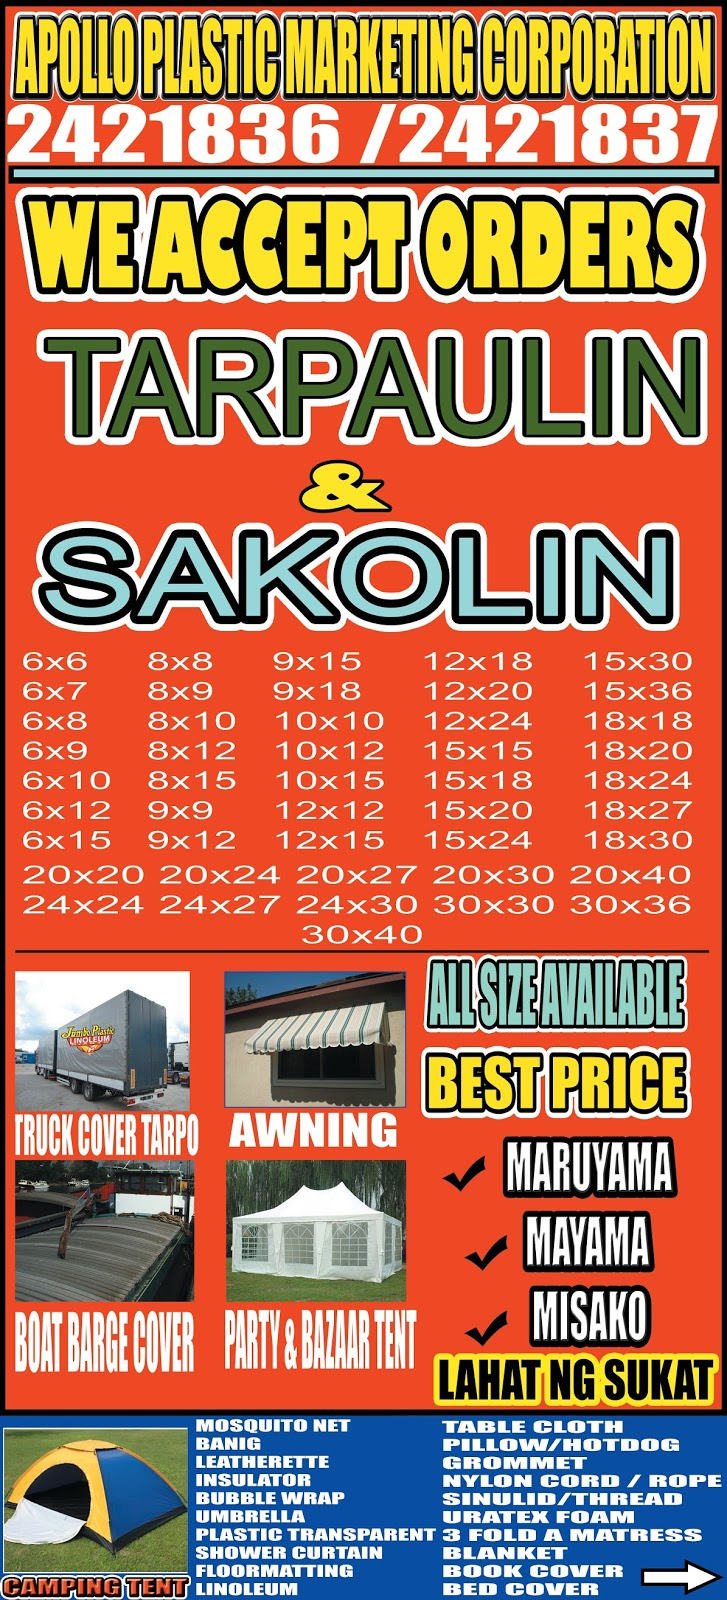 apollo plastic marketing corporation sakolin and tarpaulin ready made and custom size party tent and camping tent